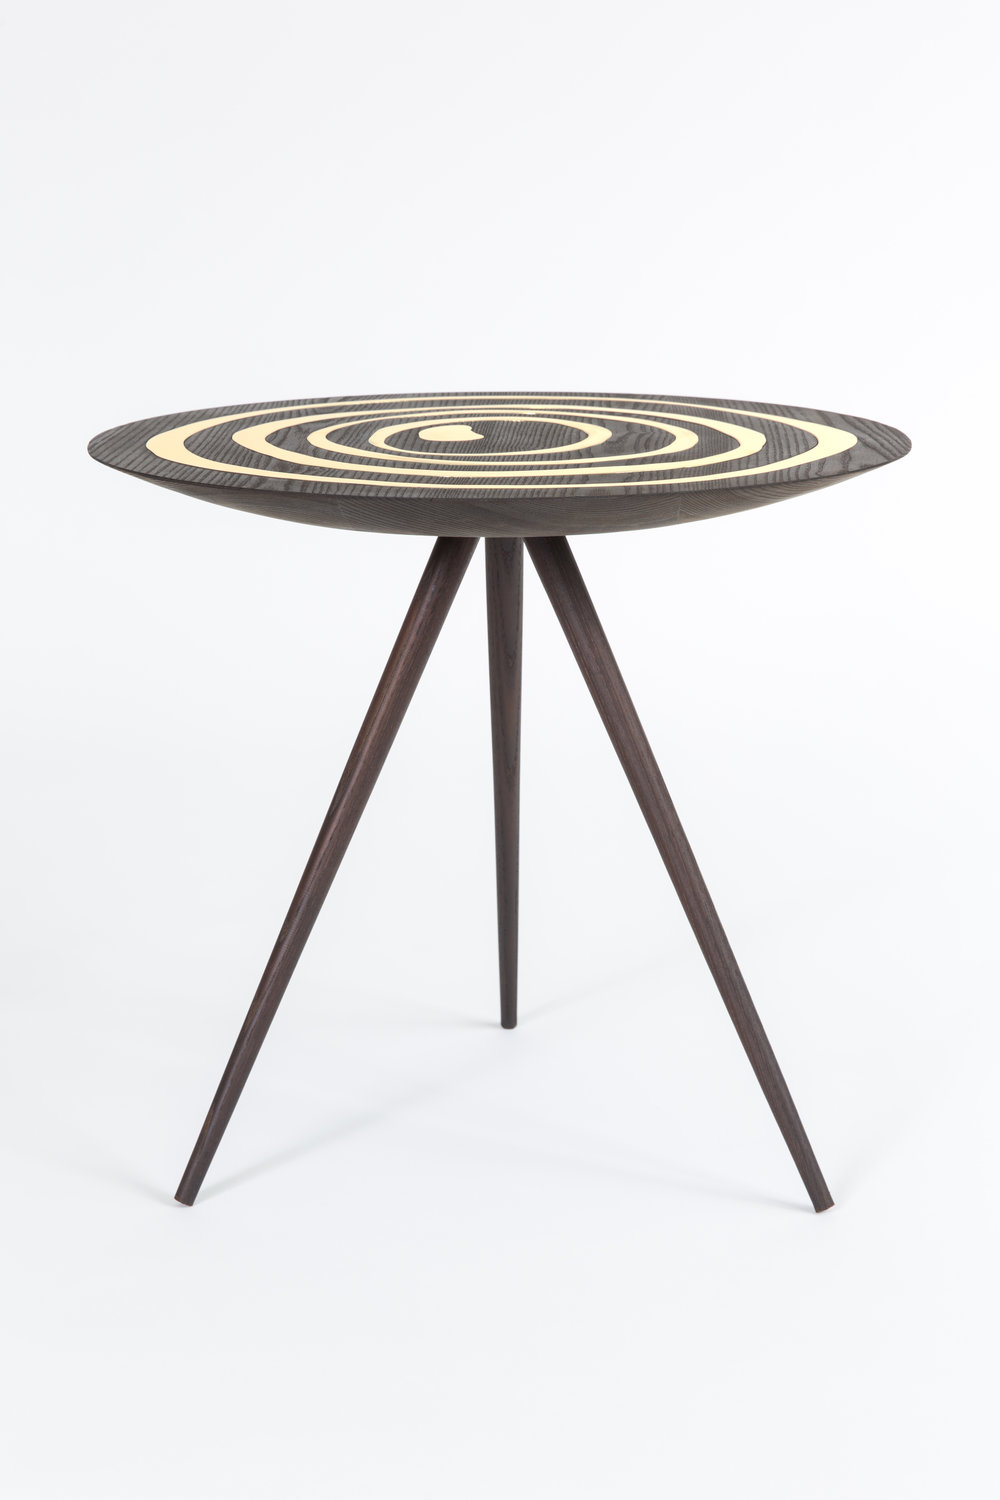 ACepaSideTable_2 copy.jpg